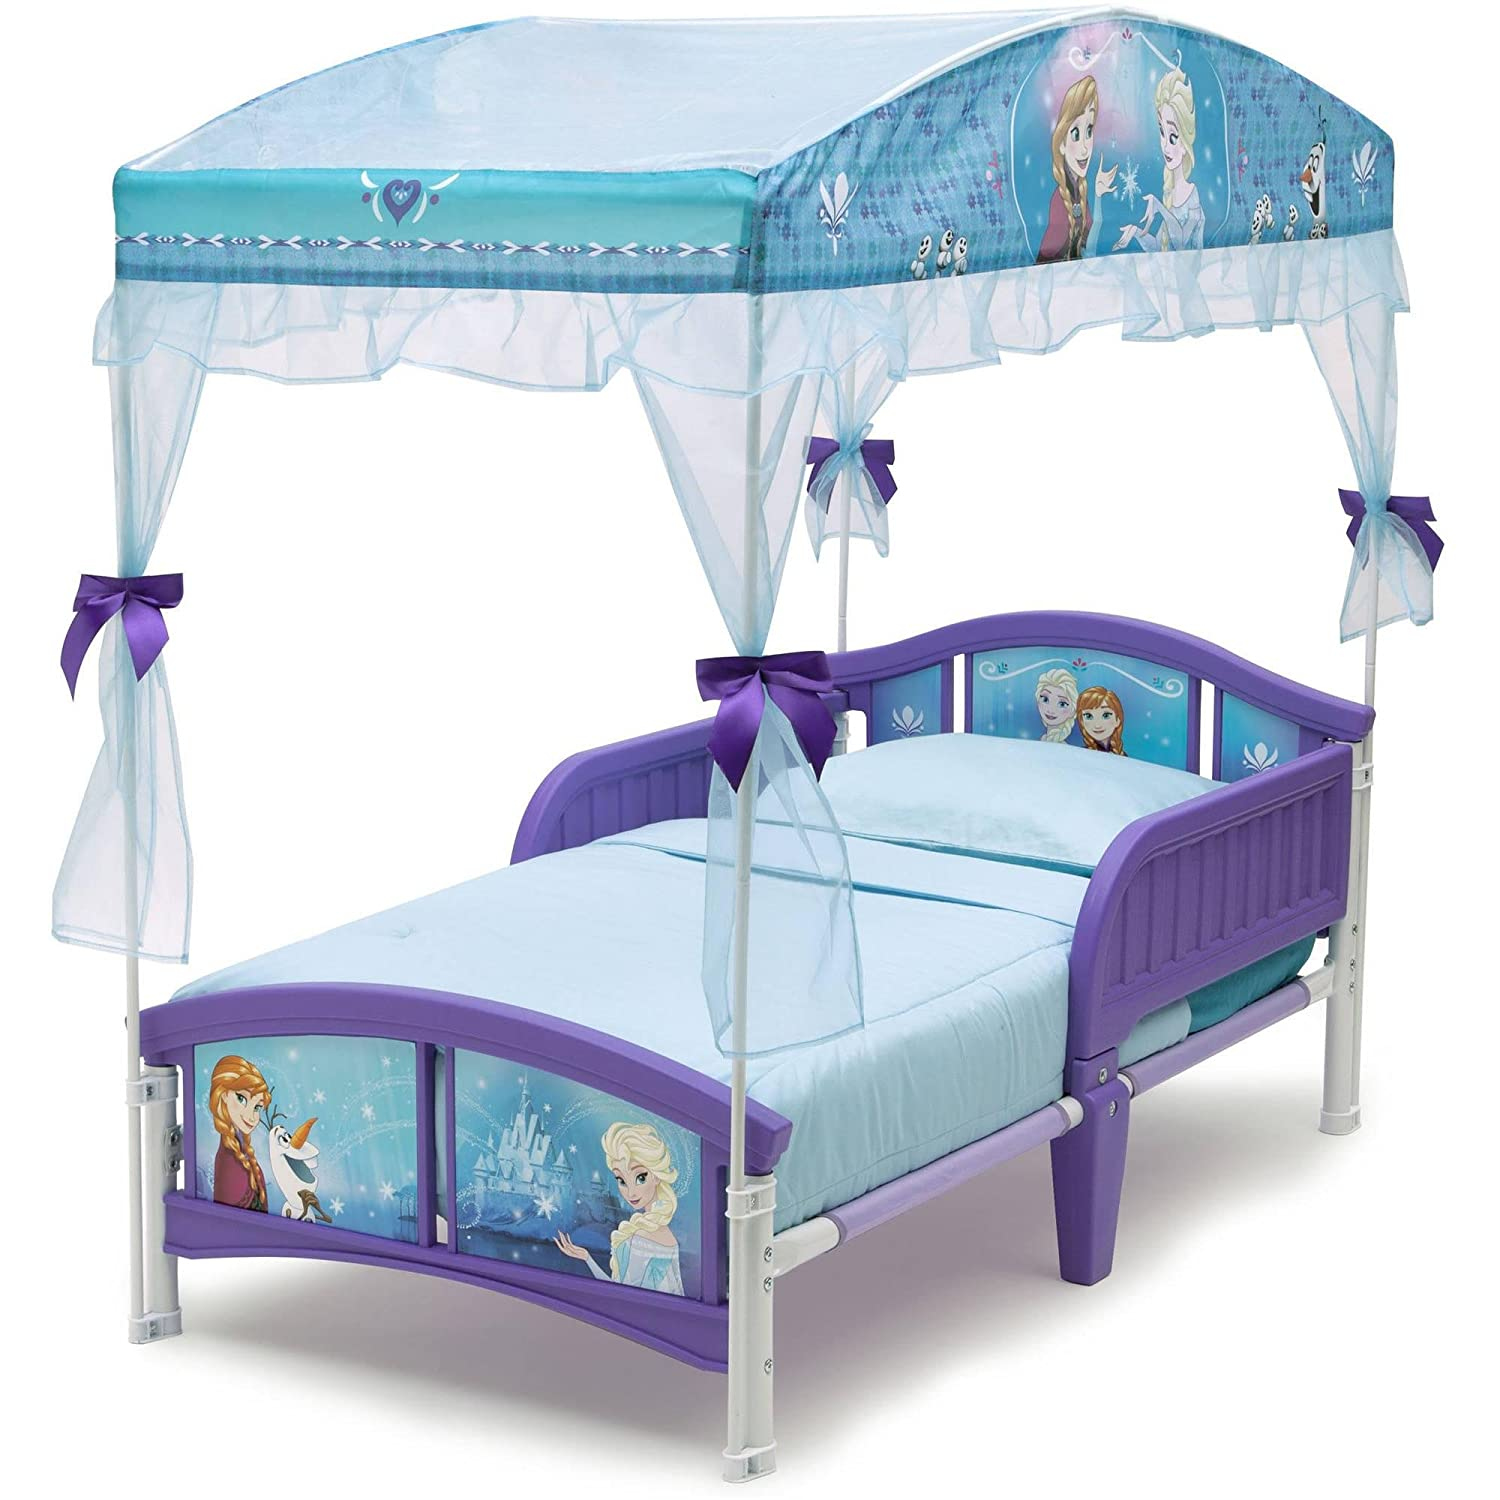 Amazon.com : Delta Children Canopy Toddler Bed, Disney Frozen : Baby